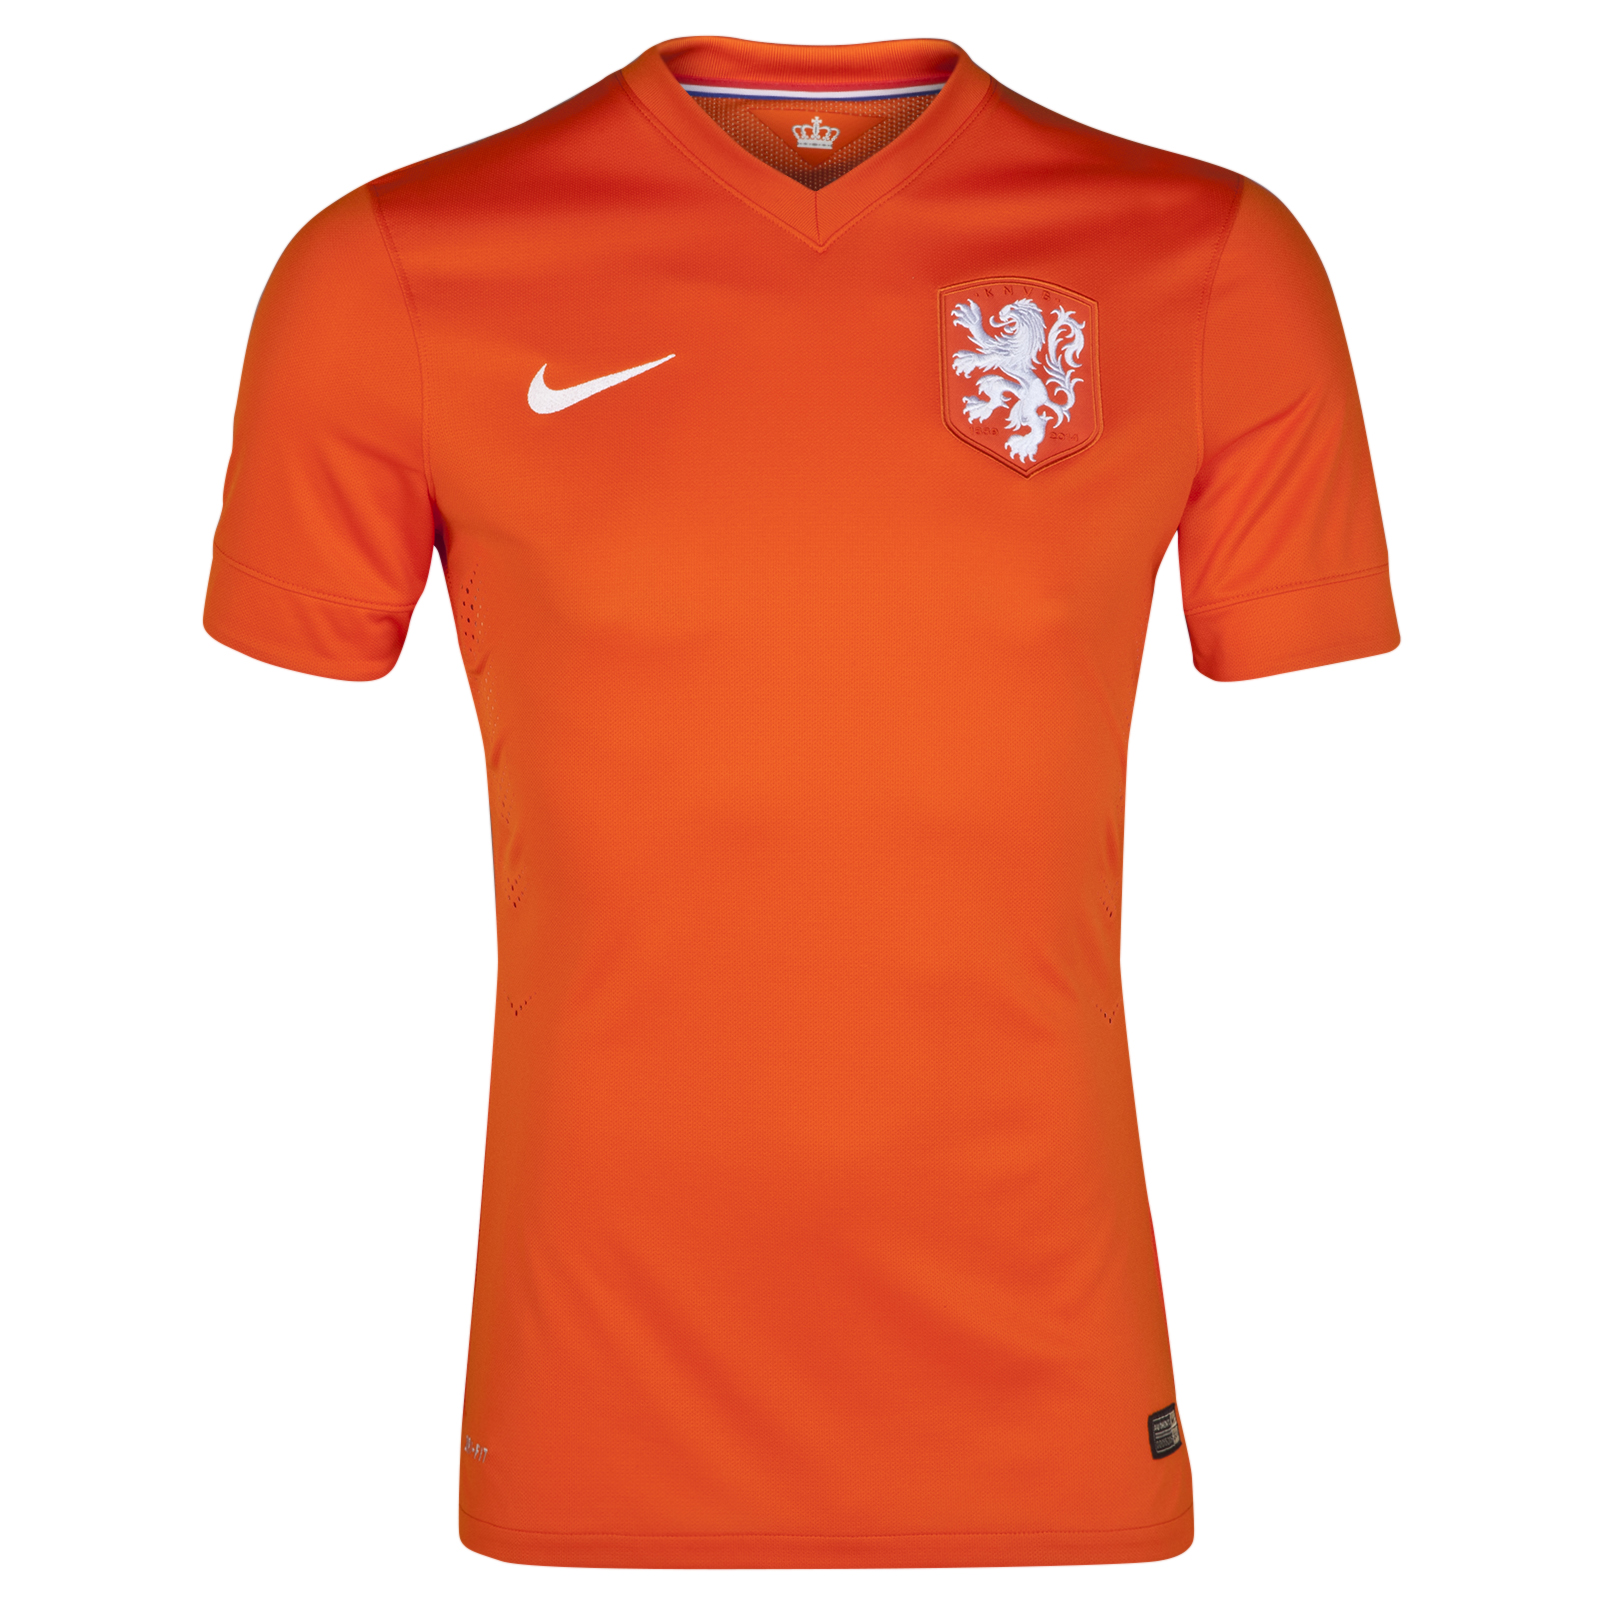 Netherlands Match Home Shirt 2014/15 Orange